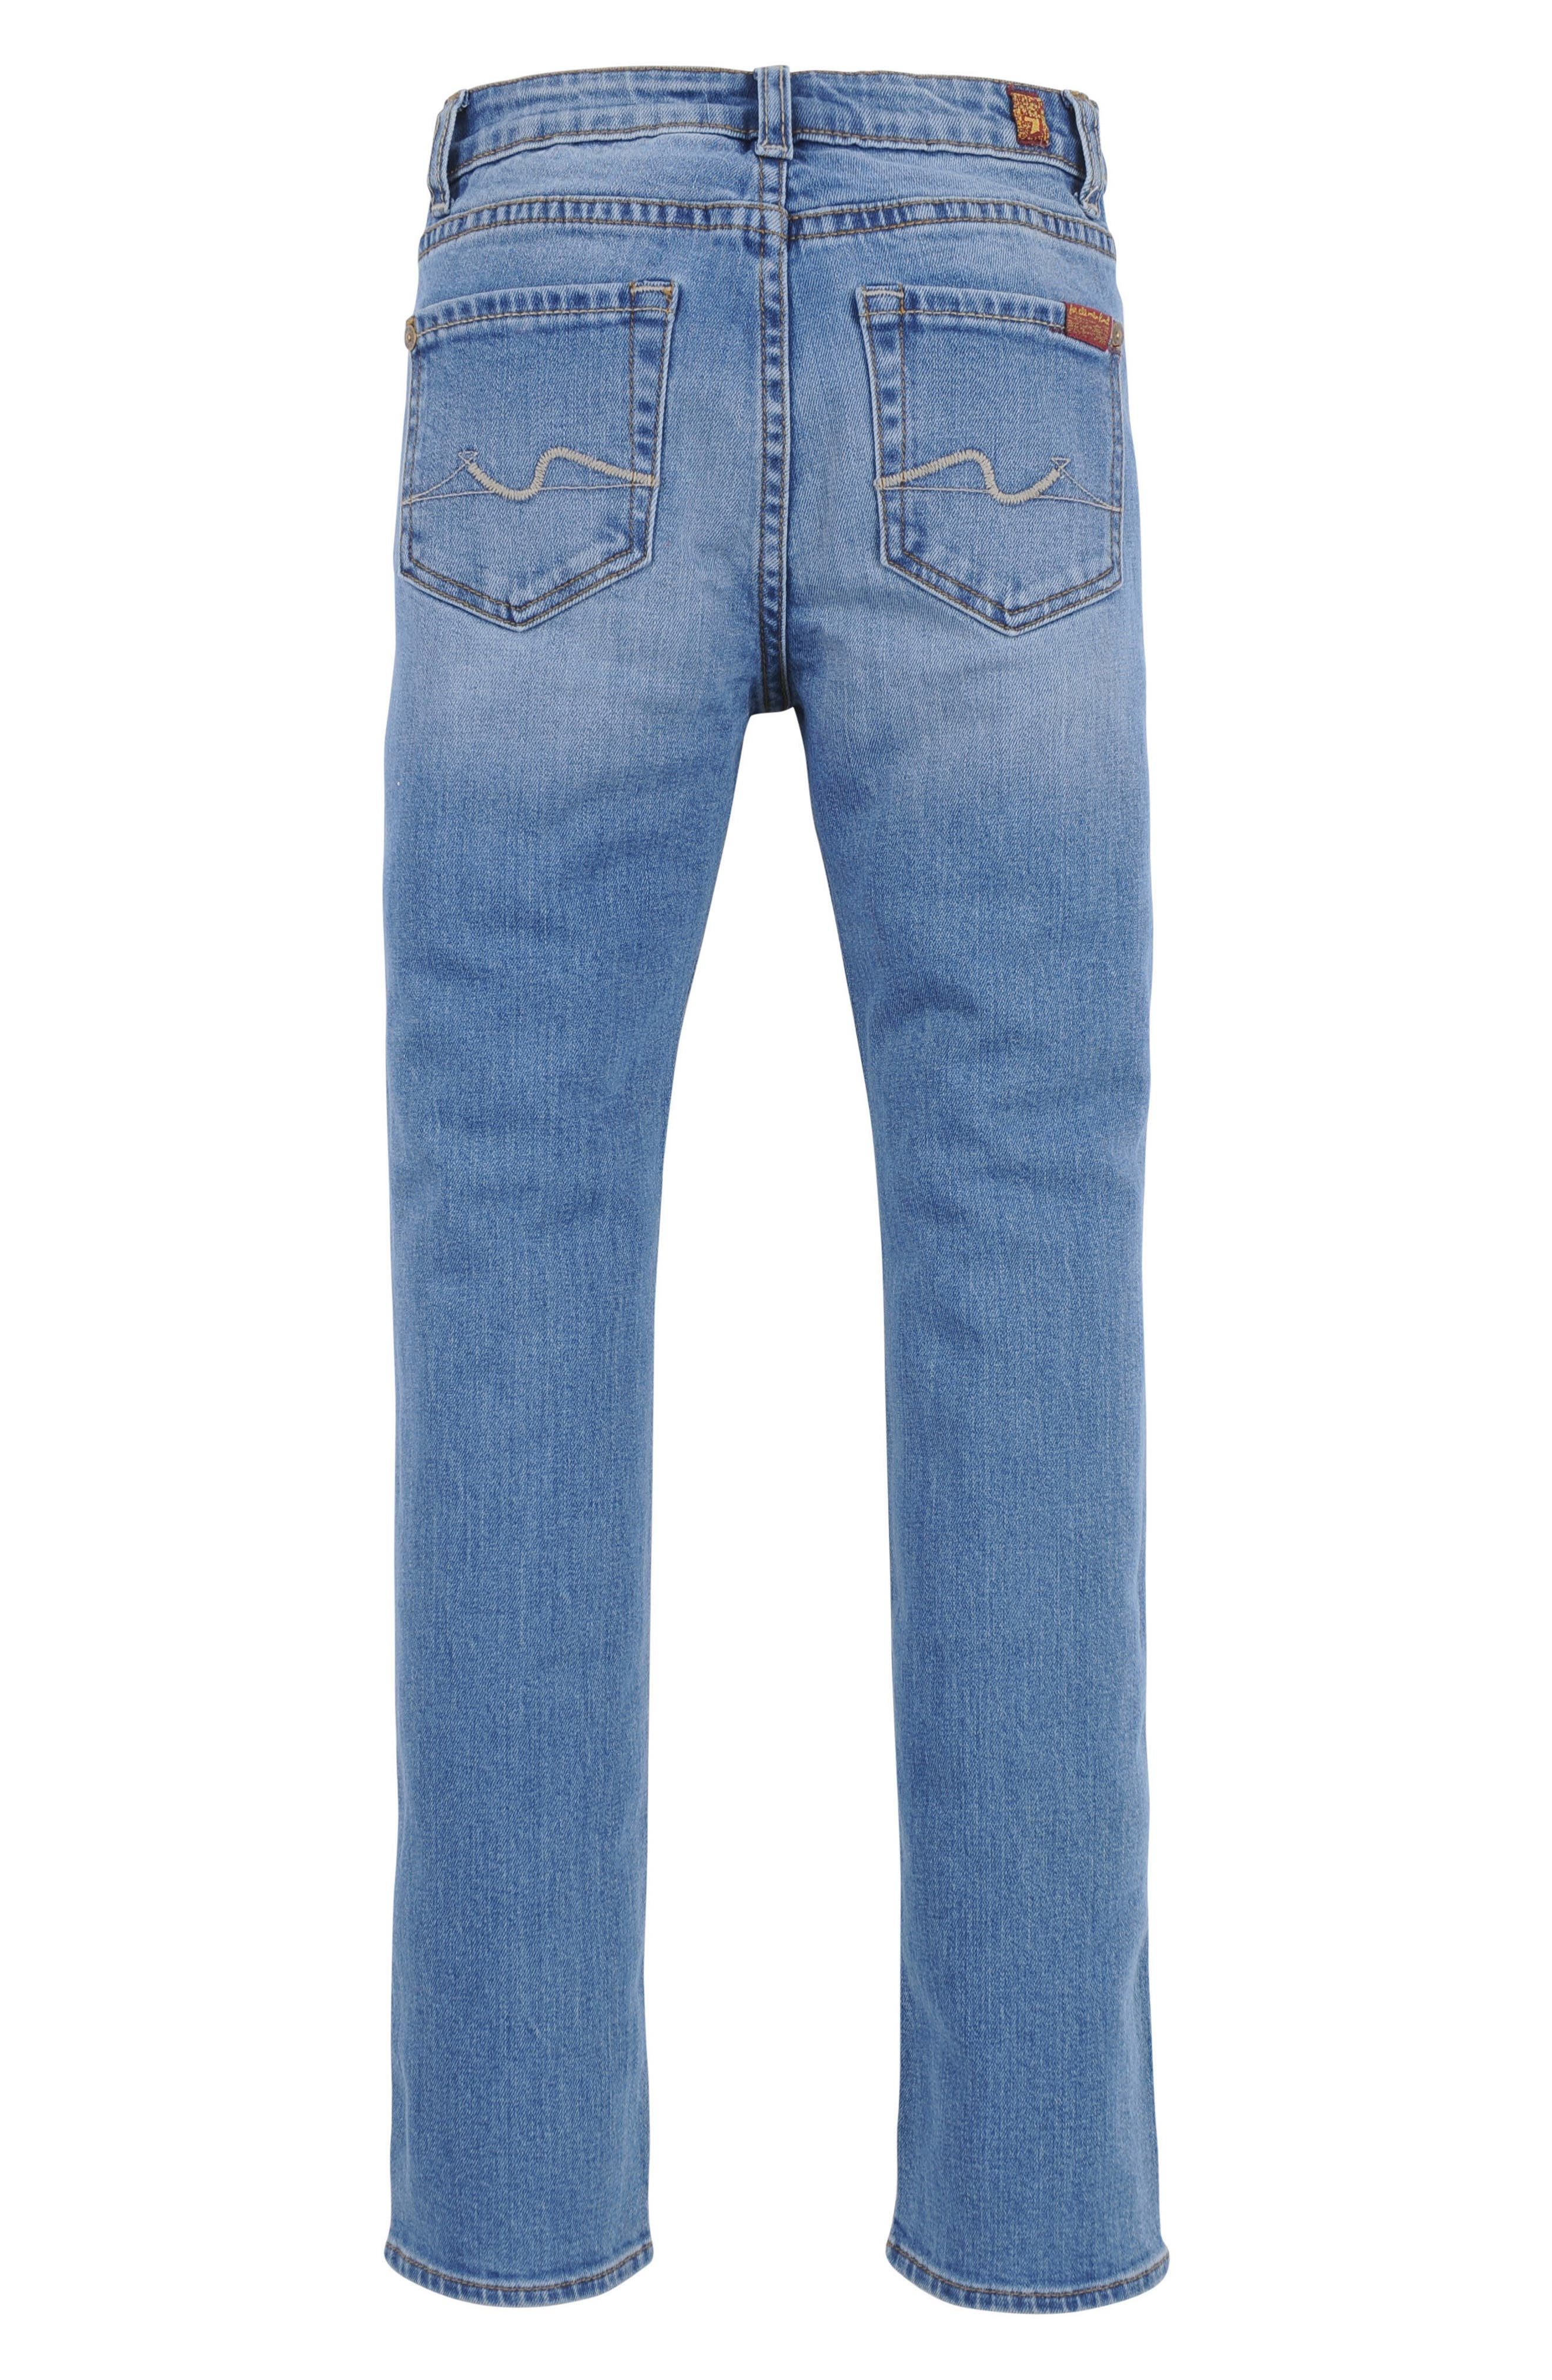 Slimmy Foolproof Jeans,                             Alternate thumbnail 4, color,